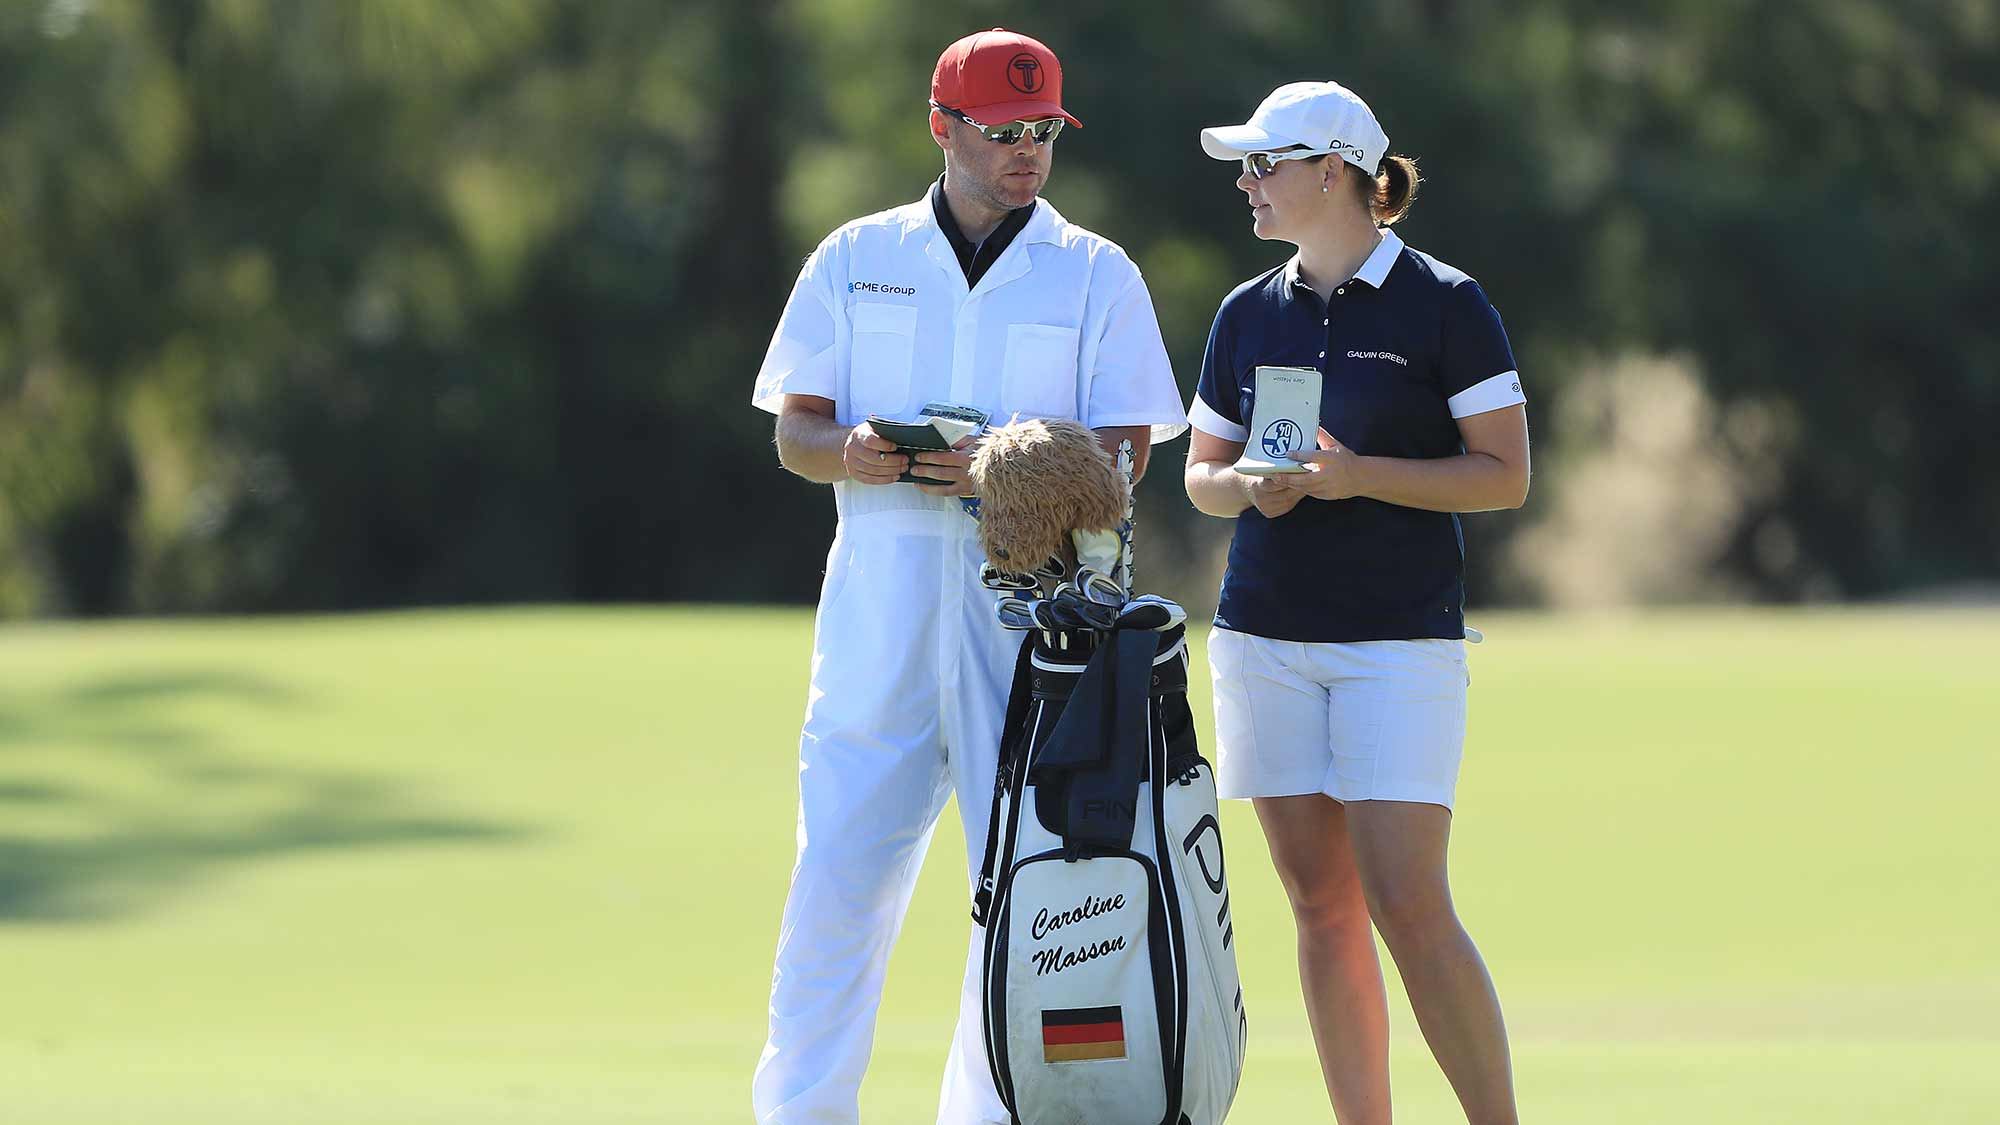 Caroline Masson of Germany talks with her caddie on the second hole during the second round of the CME Group Tour Championship at Tiburon Golf Club on November 22, 2019 in Naples, Florida